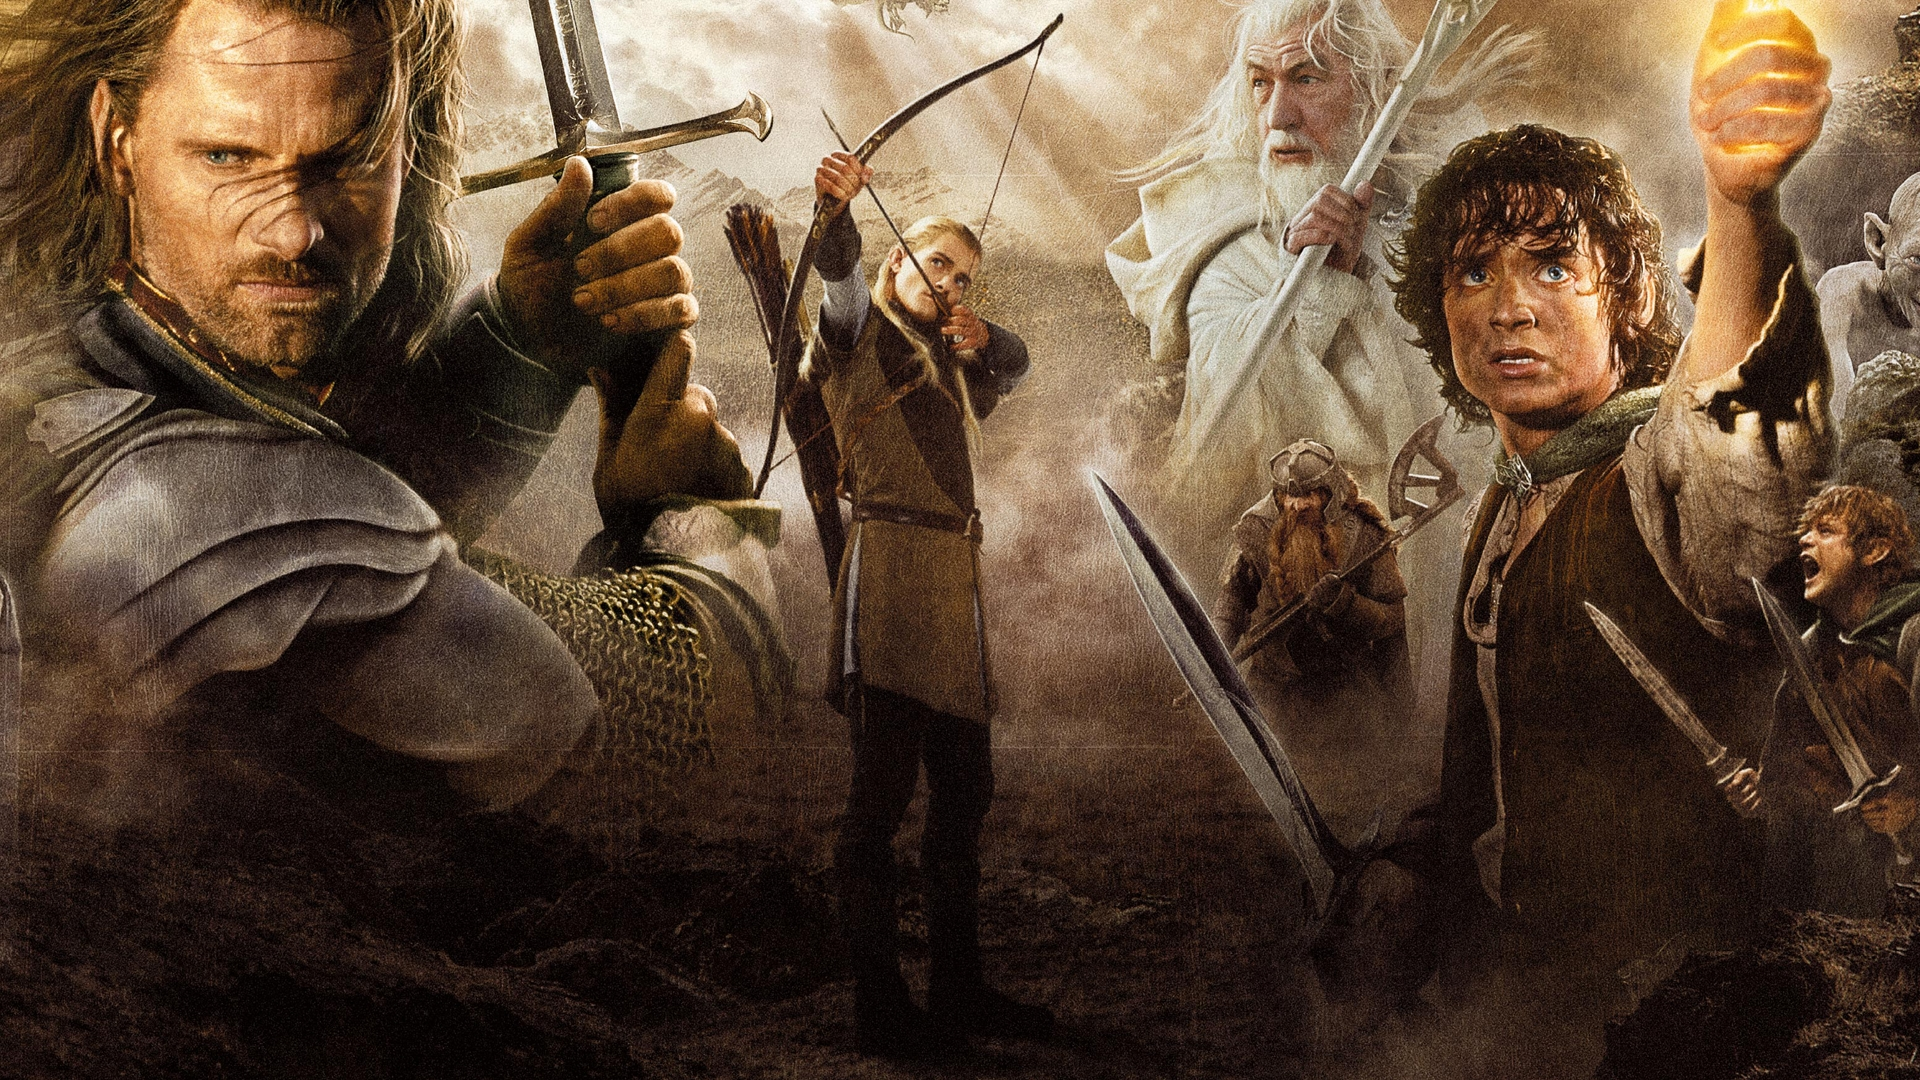 Lord of the Rings Wallpapers Hd Celebrity and Movie Pictures Photos 1920x1080